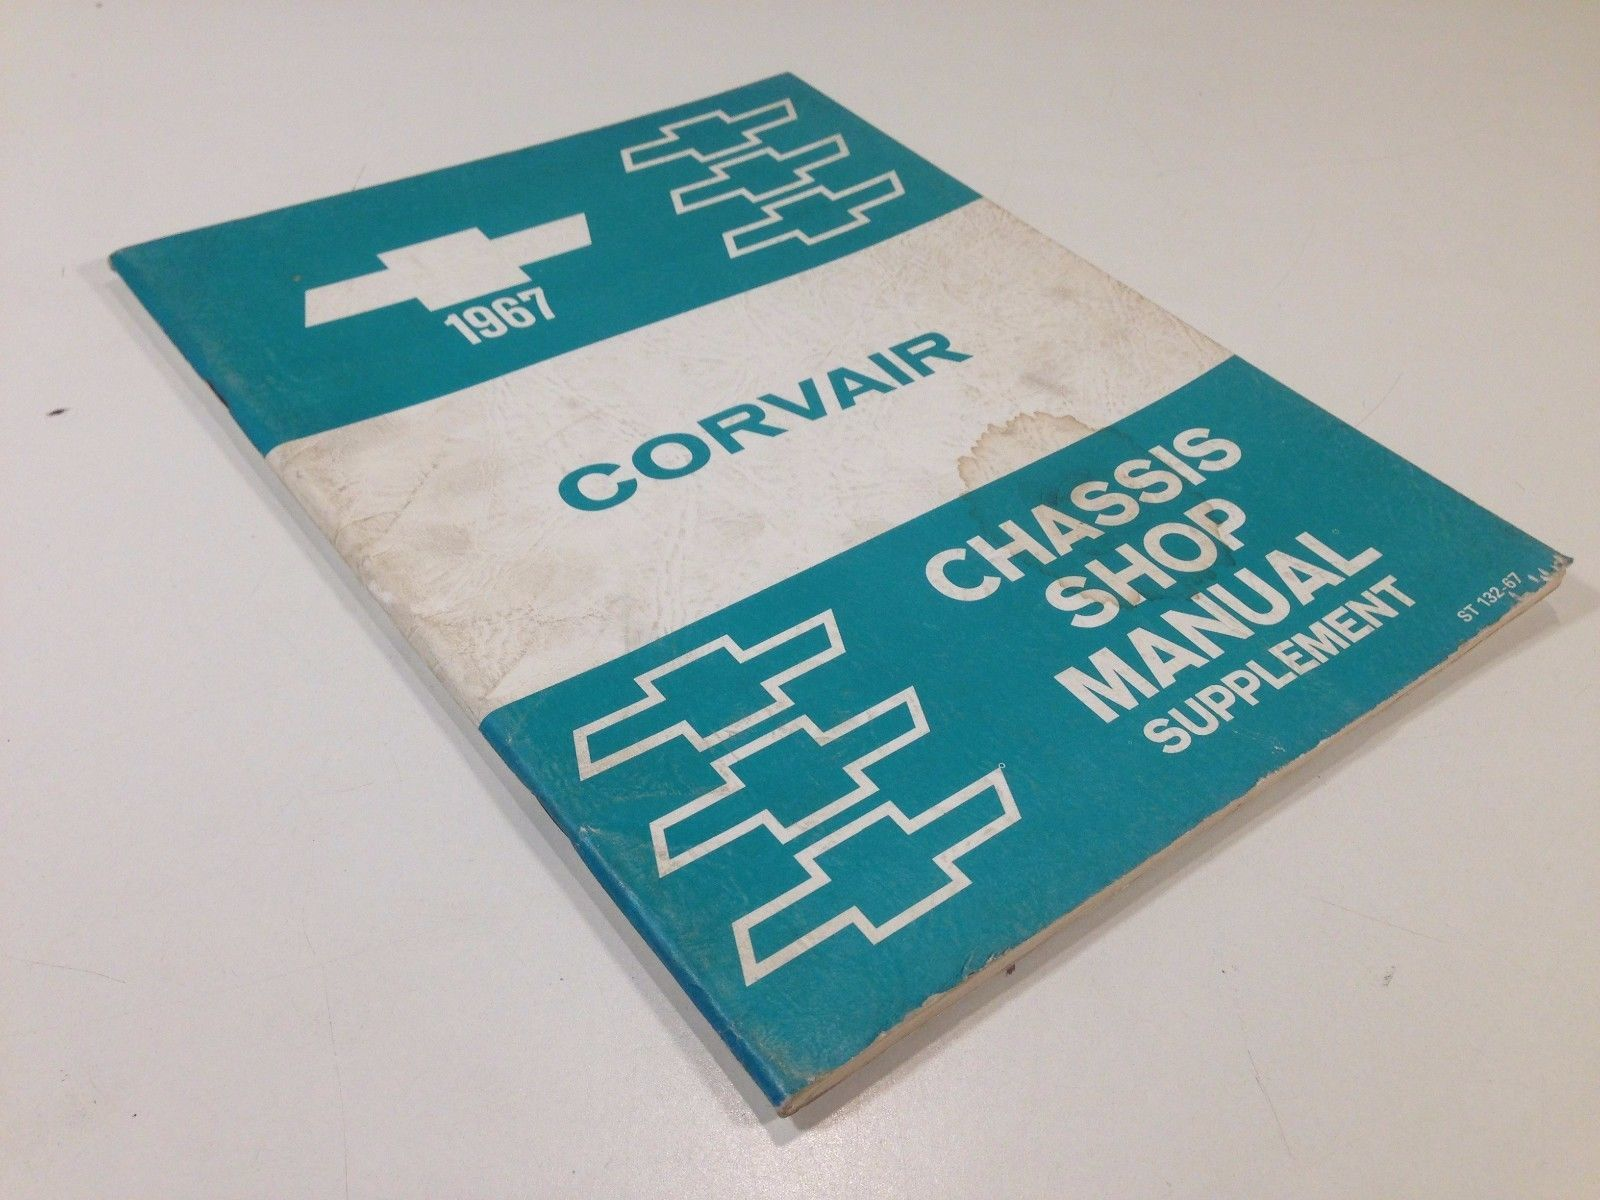 1967 Chevrolet Corvair Factory Chassis Shop Manual Supplement Original OEM